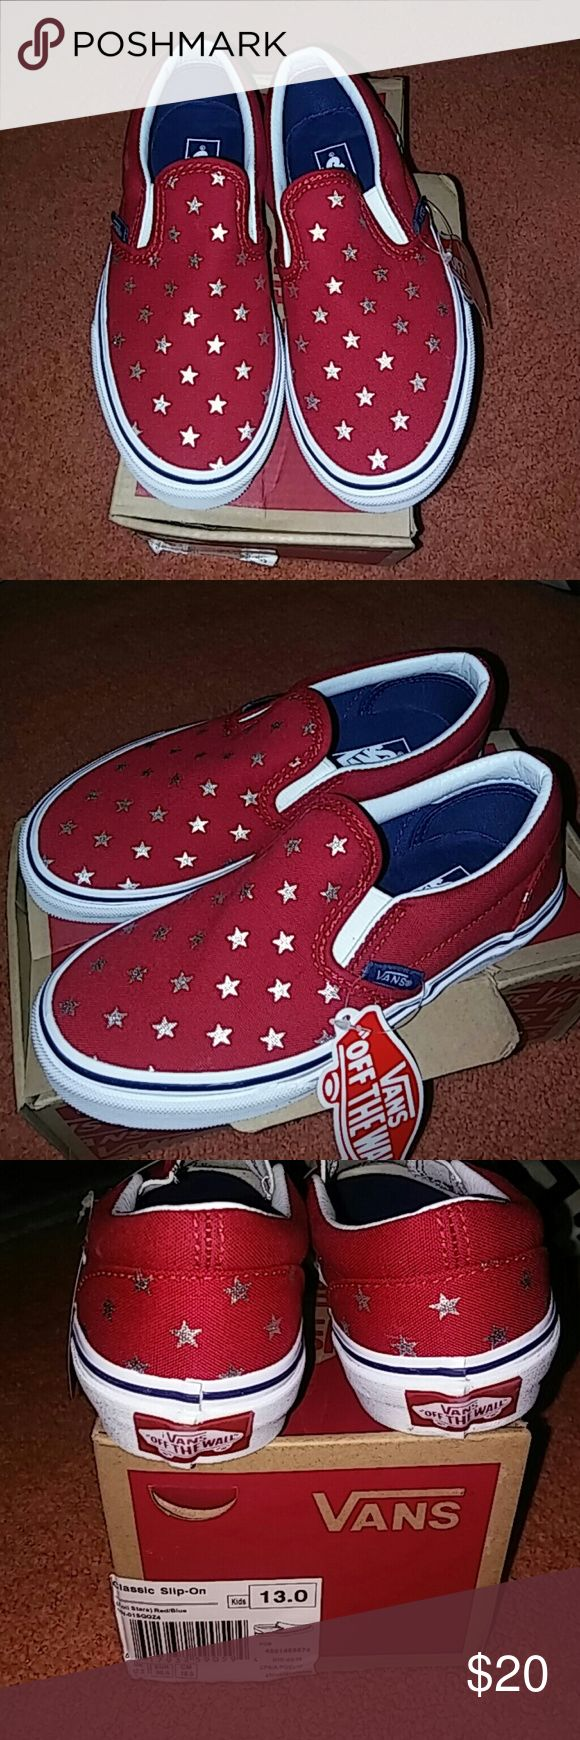 Nib red white and blue slip on girl vans These are a new pair of girls size 13 red white and blue with metallic Stars slip-on Vans Vans Shoes